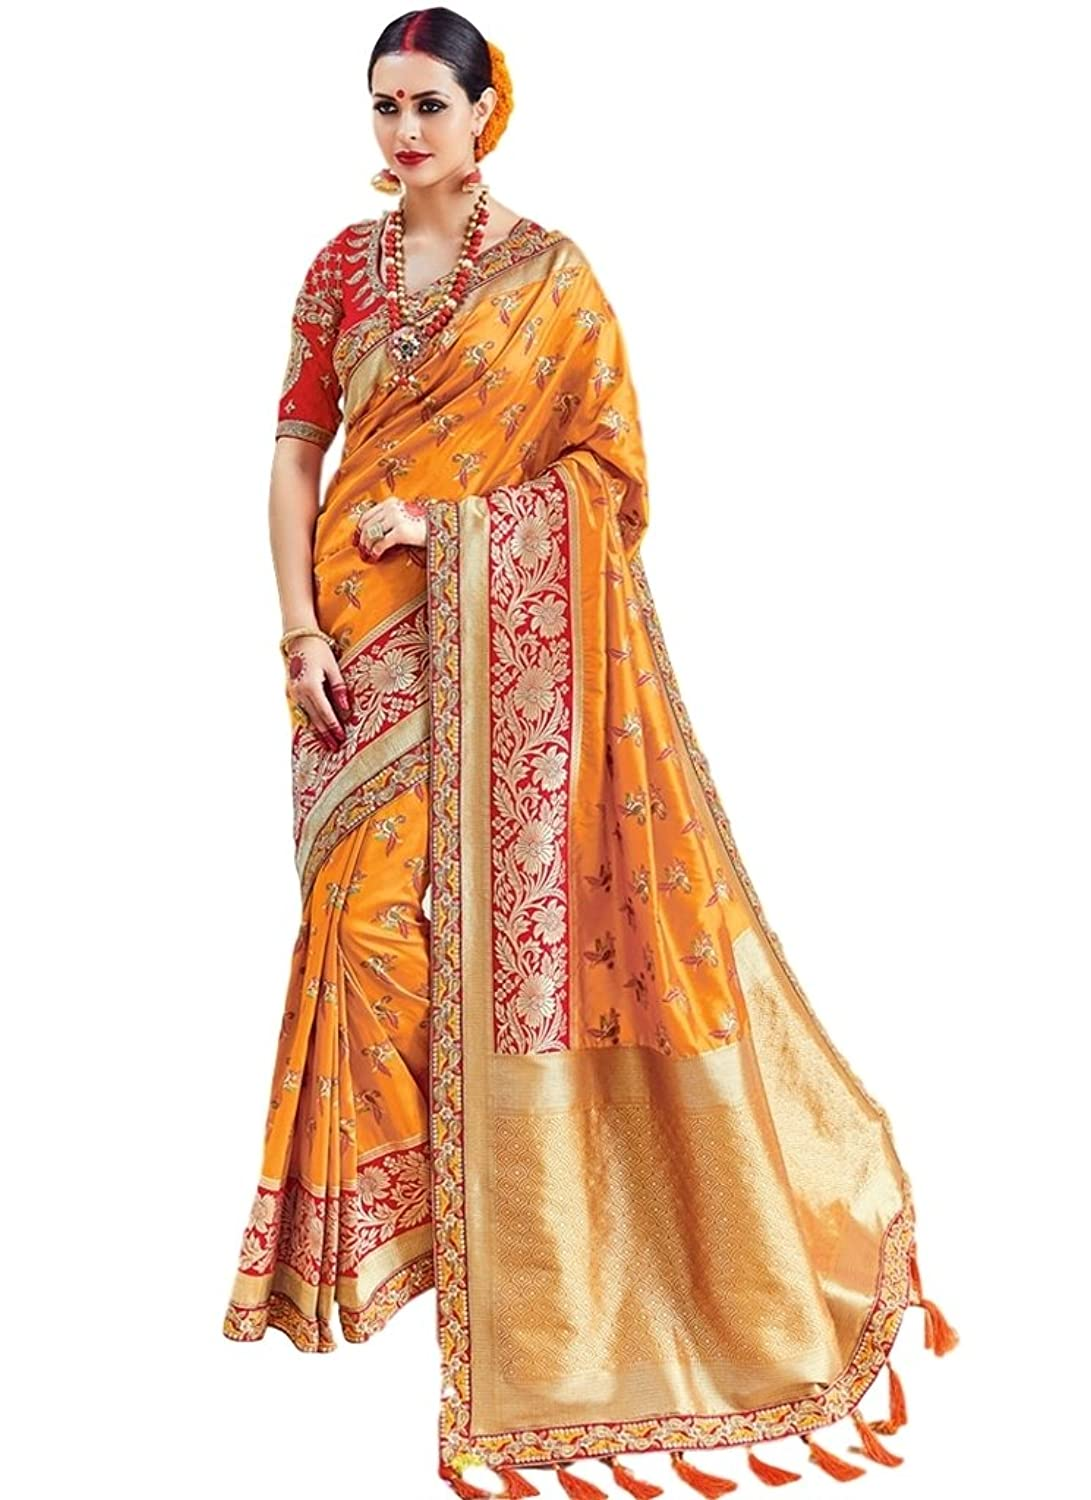 88515a3c08488d Style : Traditional Saree ; Occasion : Festival, Party, Wedding, Bridal  Fabric - Art Silk Work : Embroidered Patch Border Zari; Color : Mustard Saree  Blouse ...